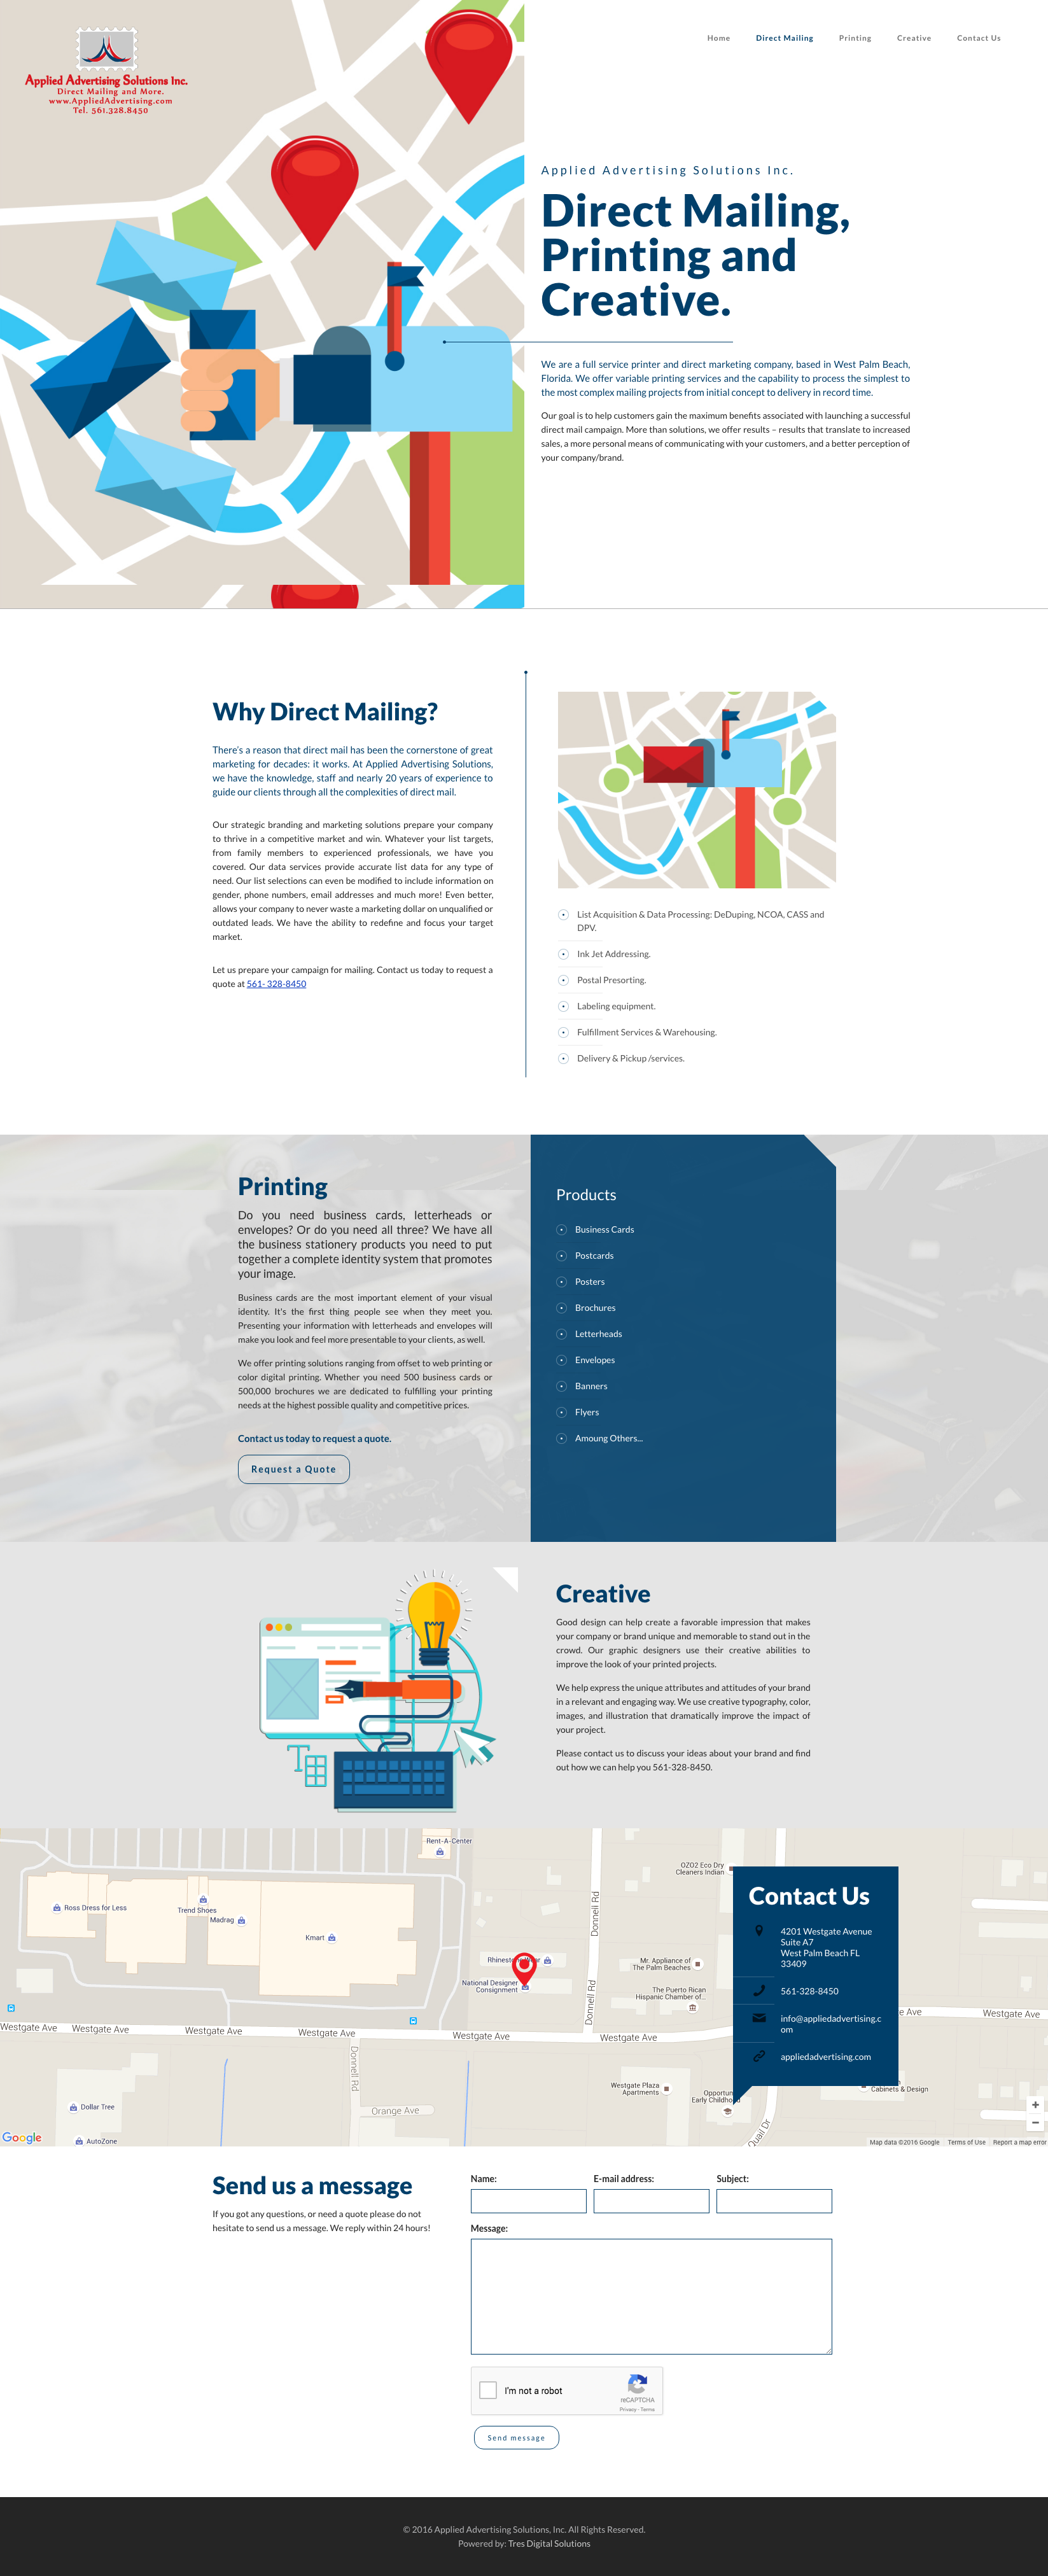 Applied-Advertising-Solutions